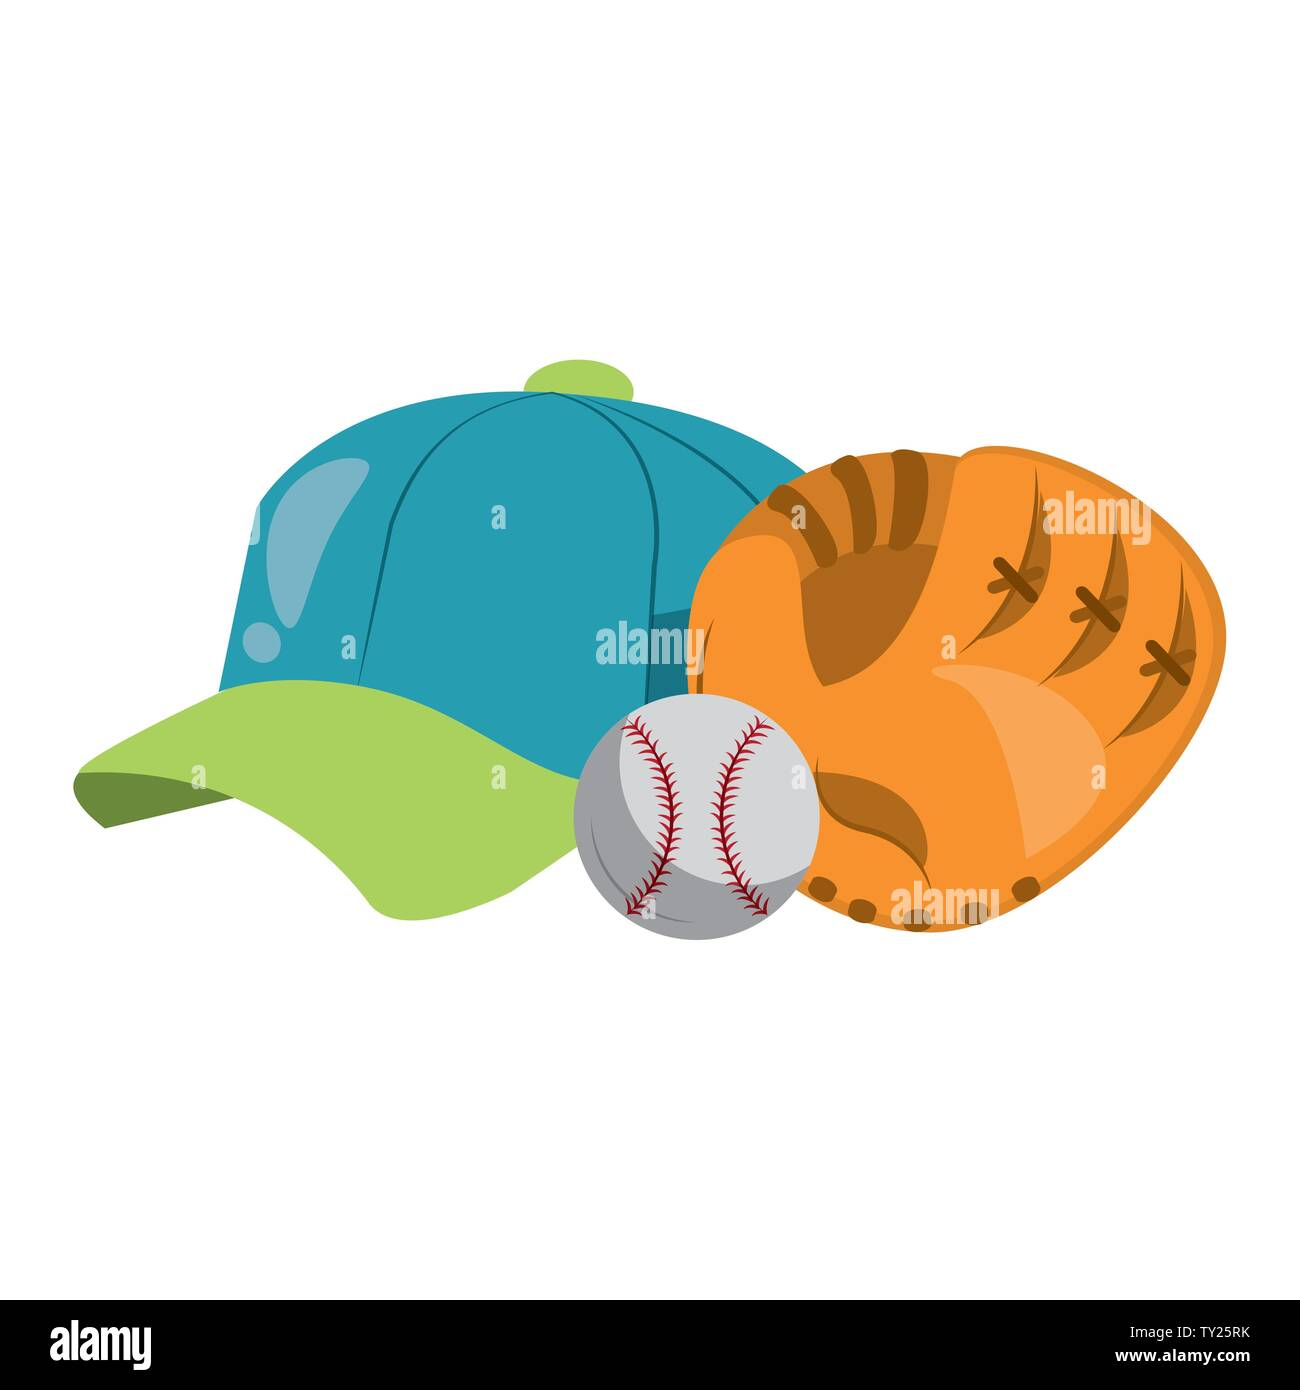 Baseball equiment Elemente Kugel, Catcher golve und Hut Symbol cartoon Vector Illustration graphic design Stockbild